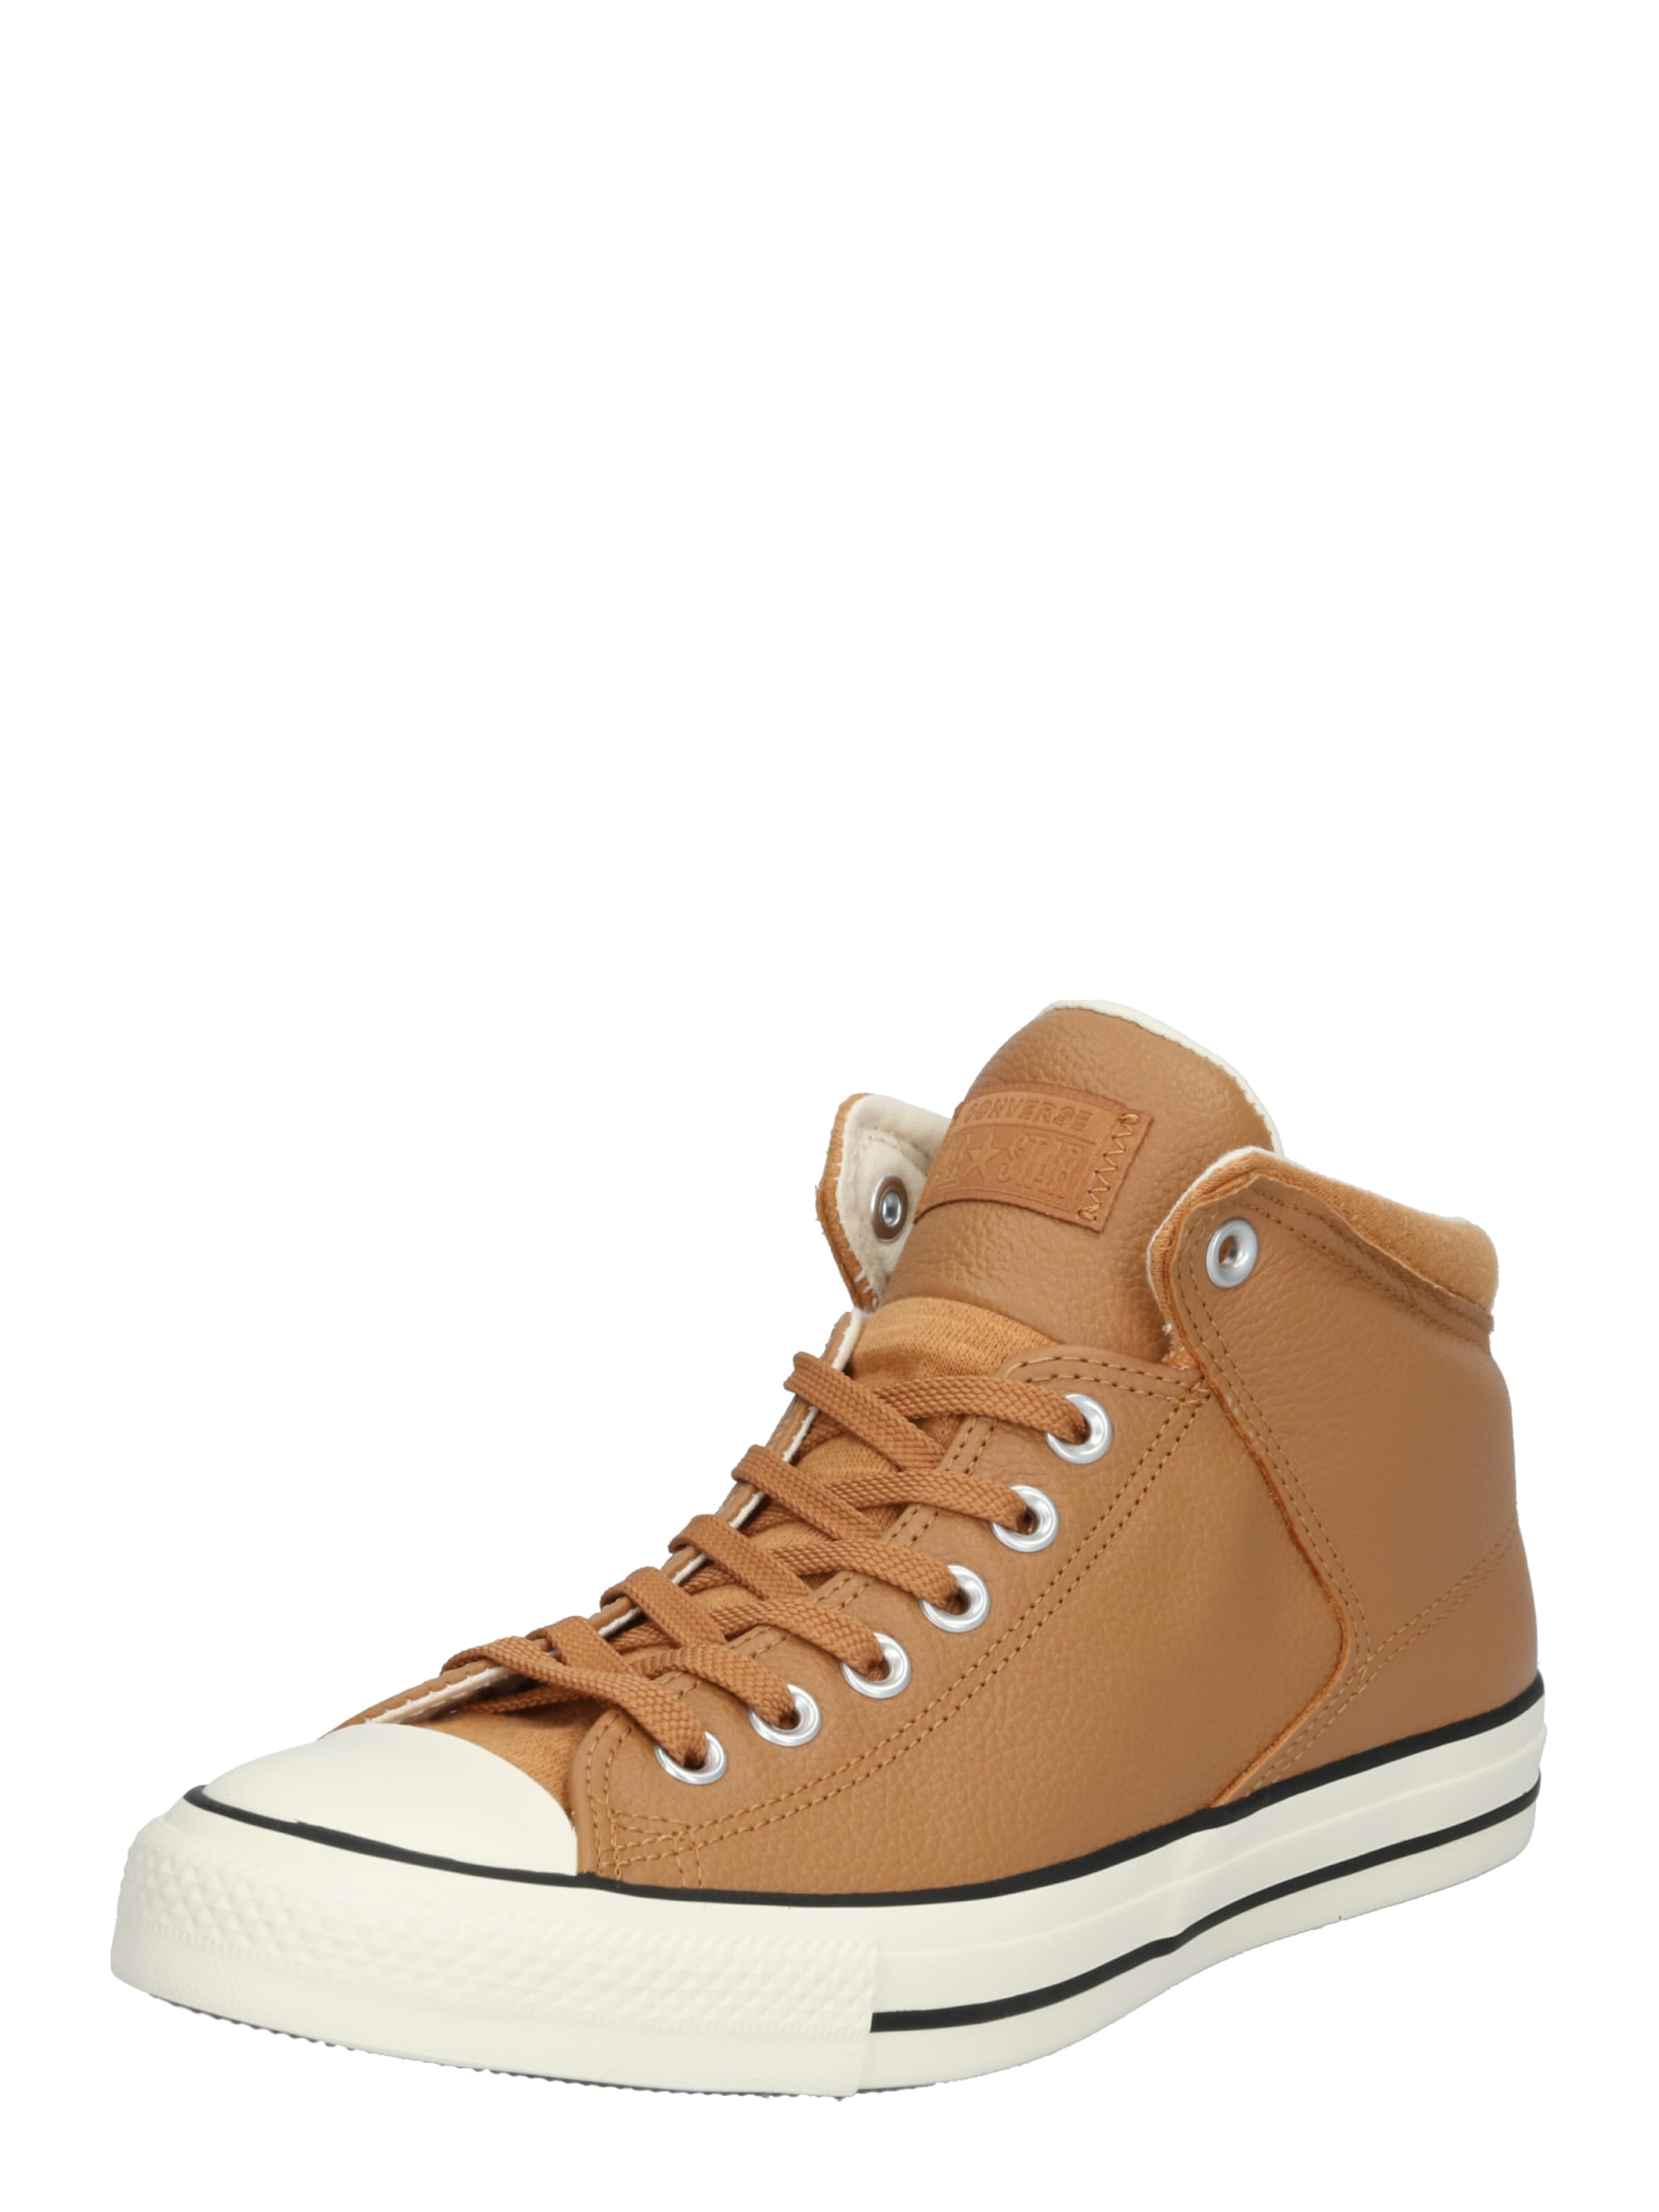 All In Sneaker Star Converse 'chuck Schwarz Taylor High Street' WEH29DIY